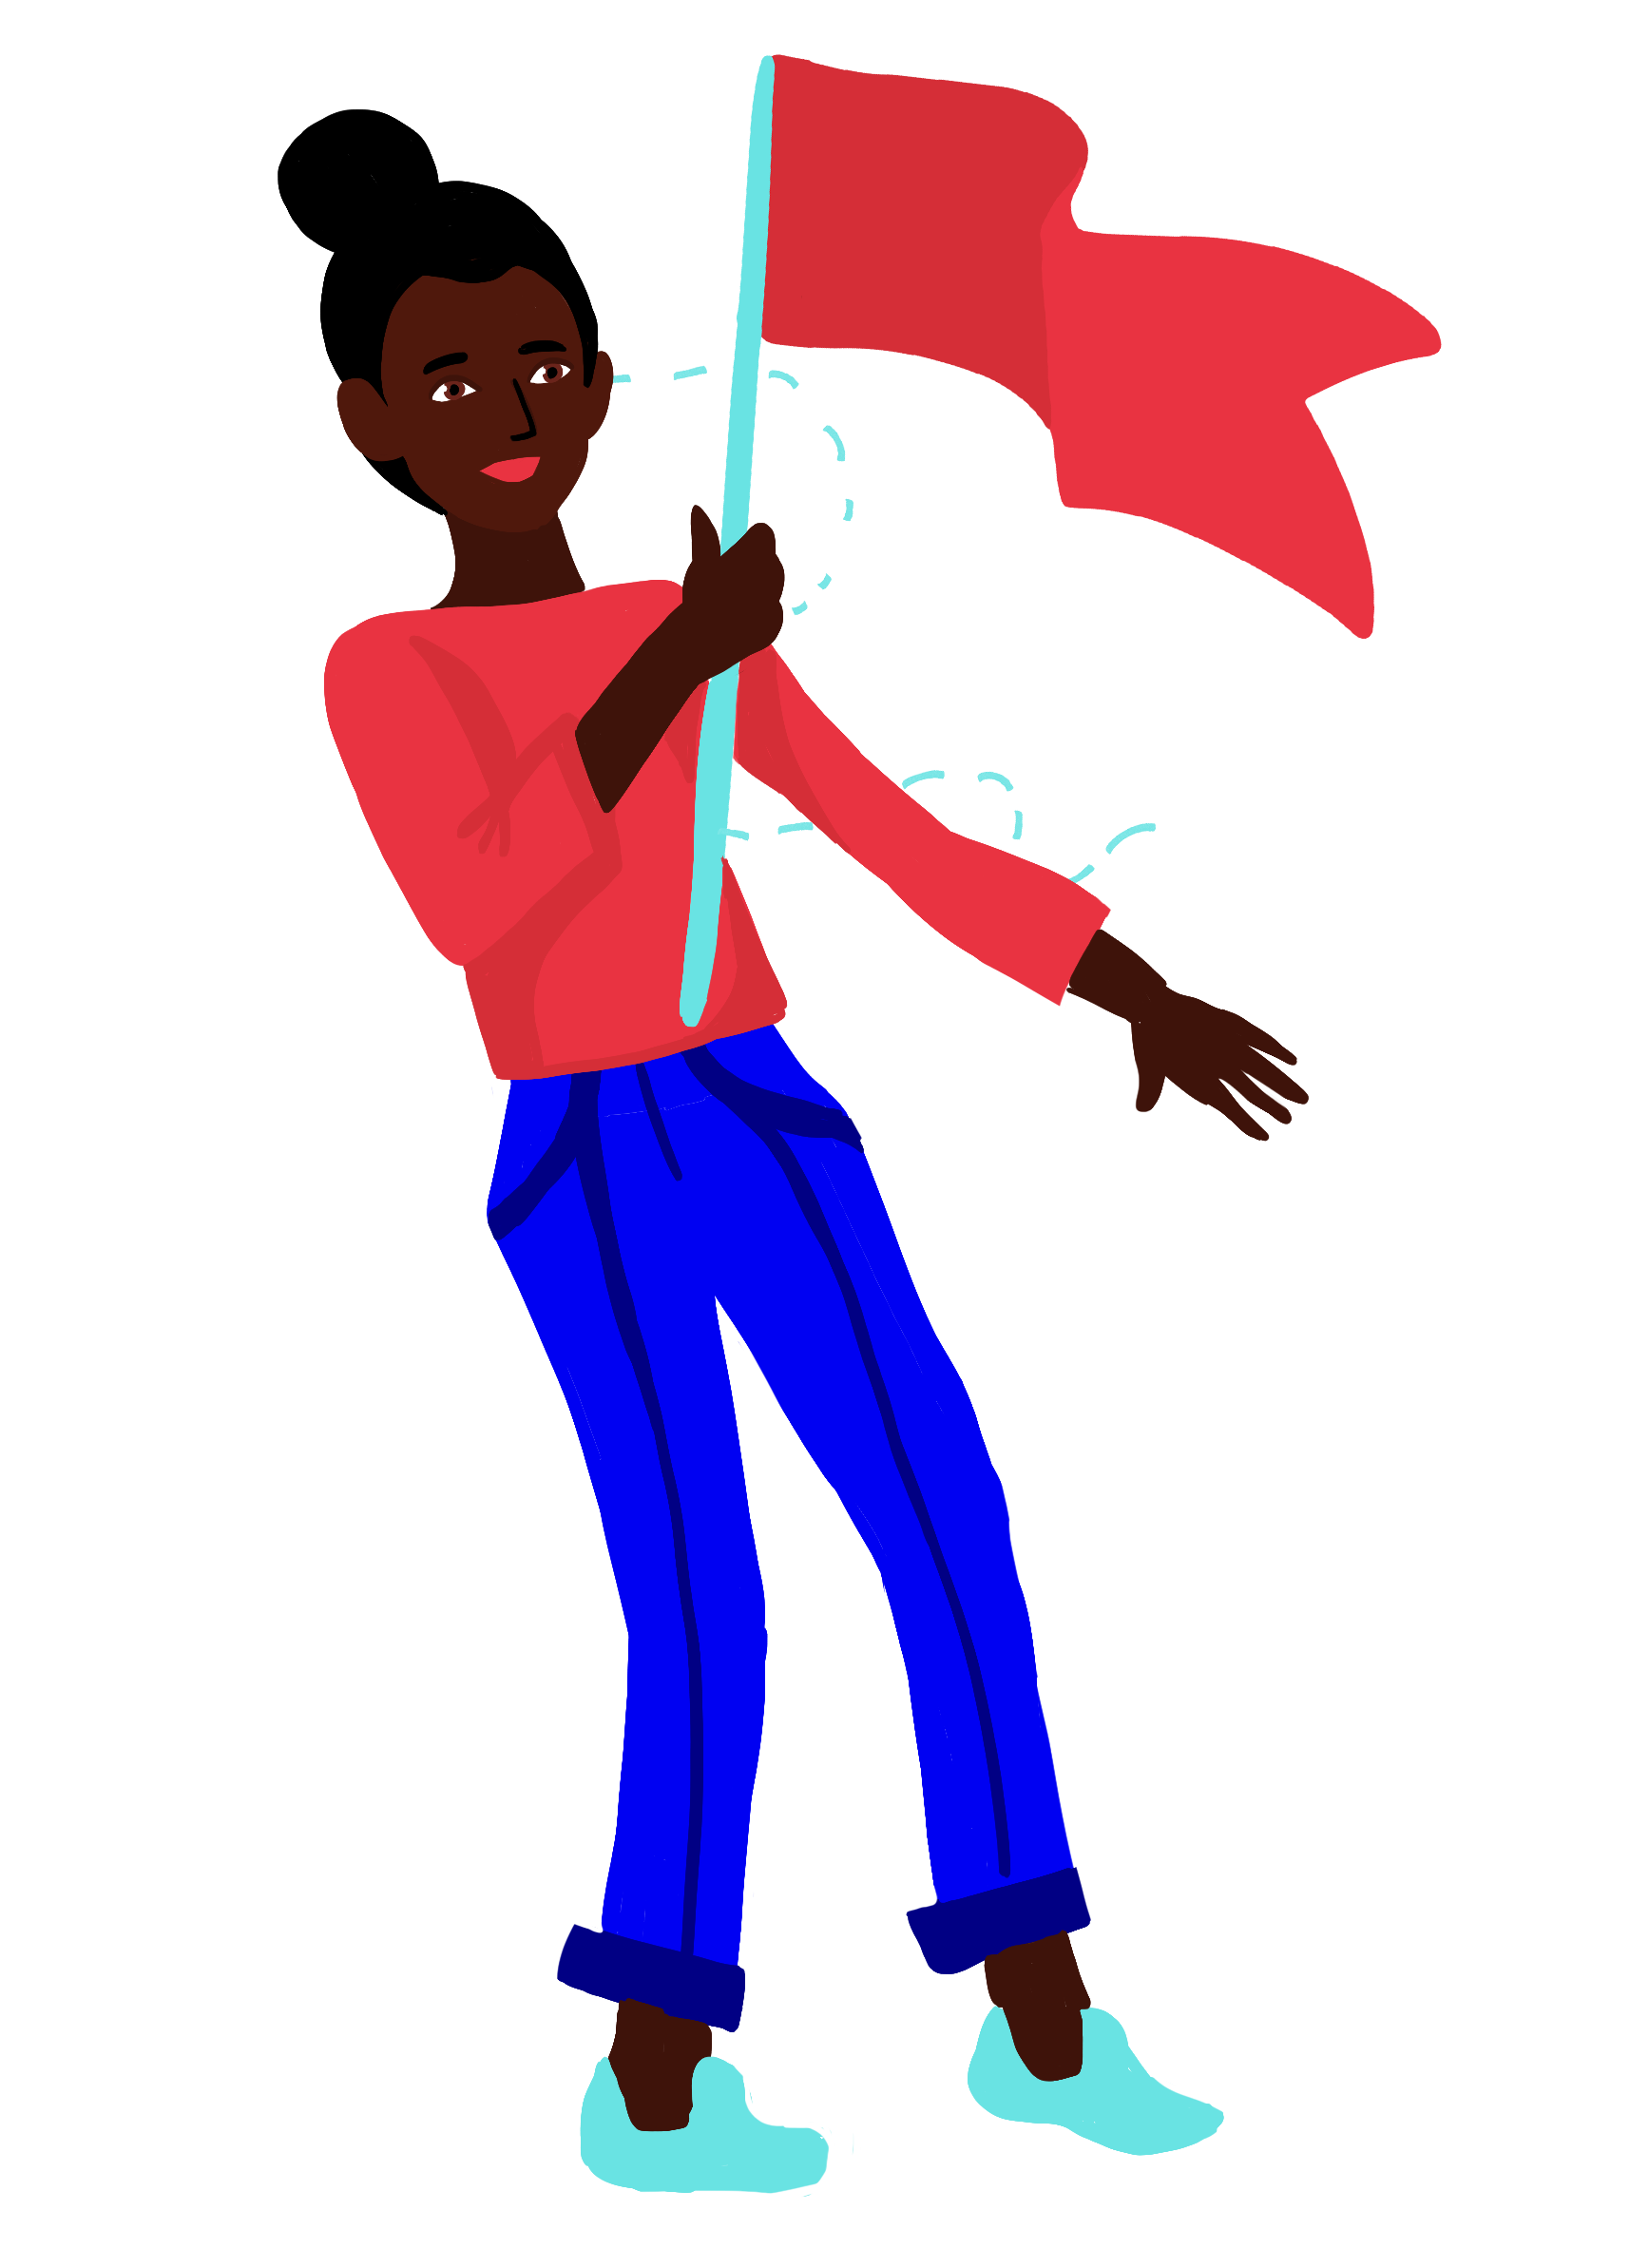 Woman happily waving a red flag.